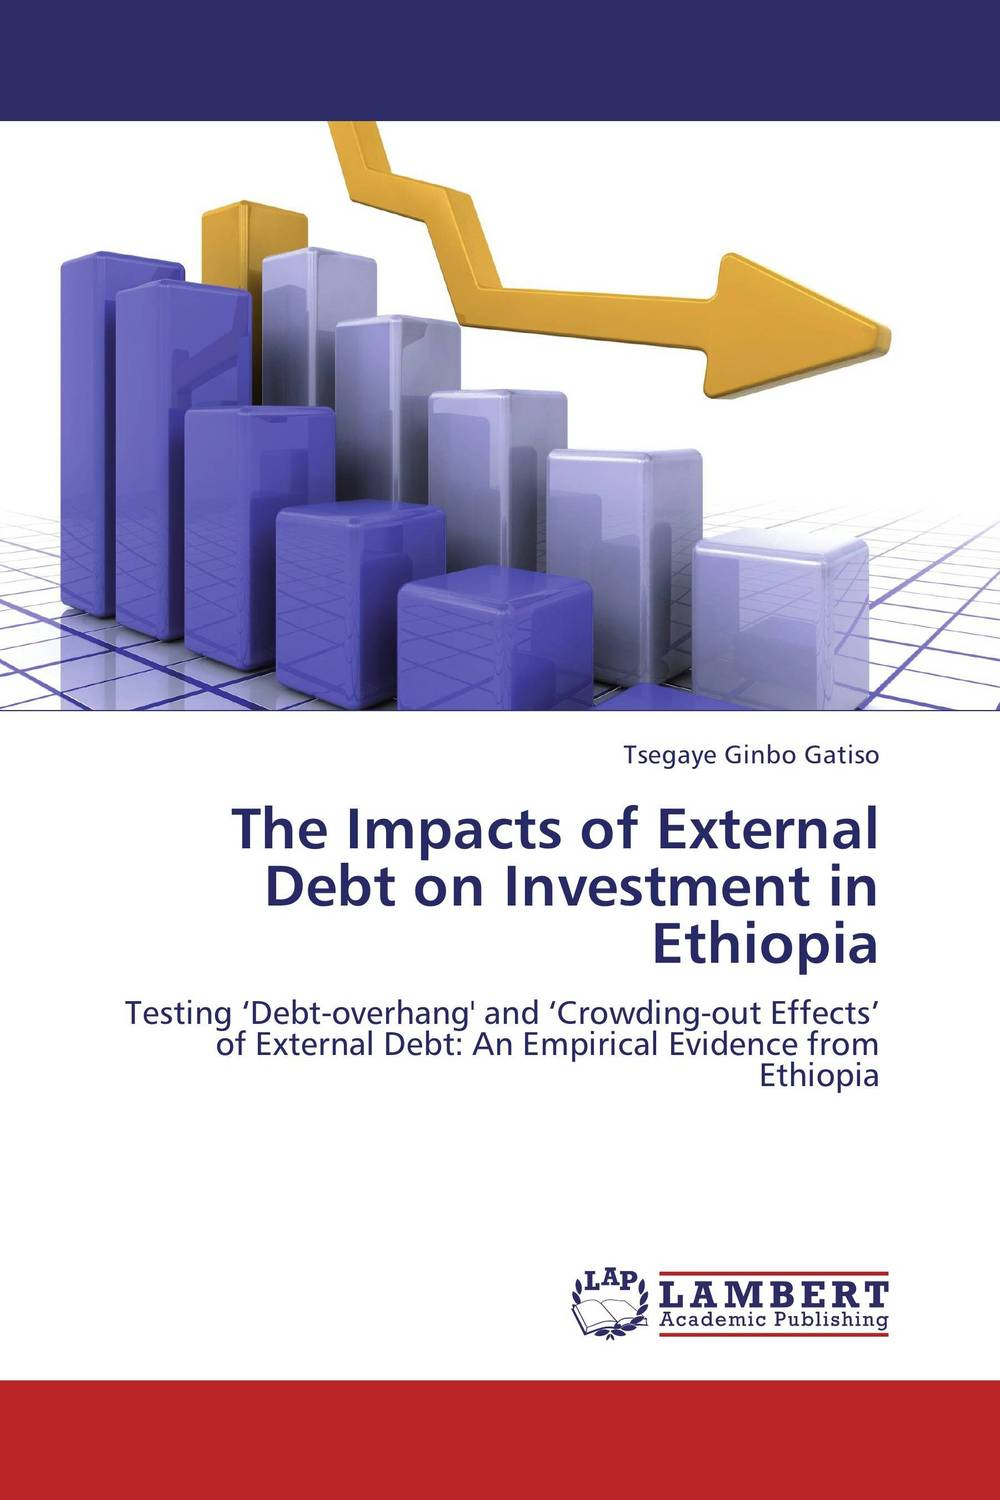 The Impacts of External Debt on Investment in Ethiopia jeff cox debt deficits and the demise of the american economy